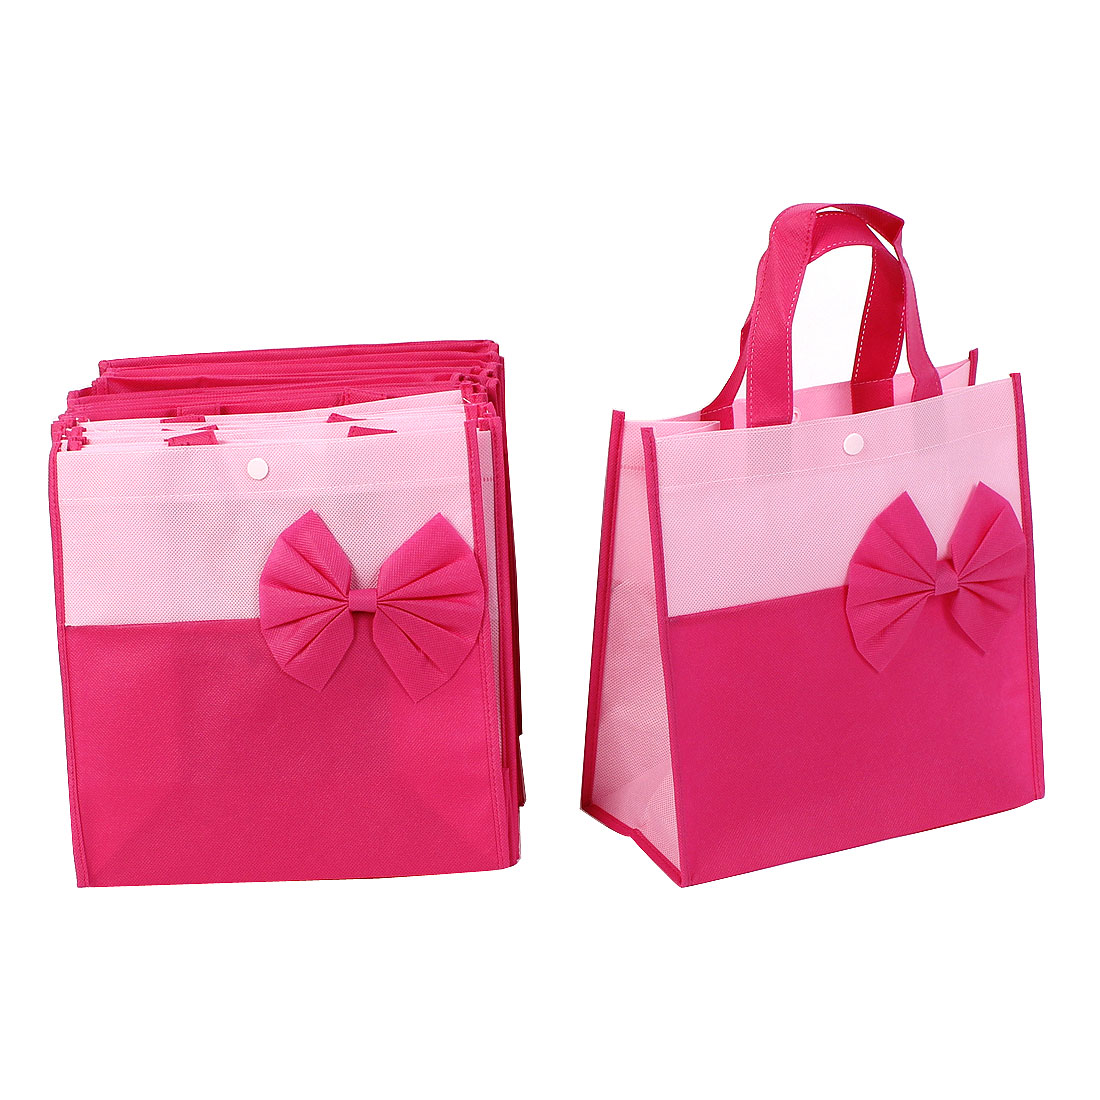 Shopping Trading Bowknot Decor Nylon Non-Woven Fabric Reusable Bag Pink 20 Pcs